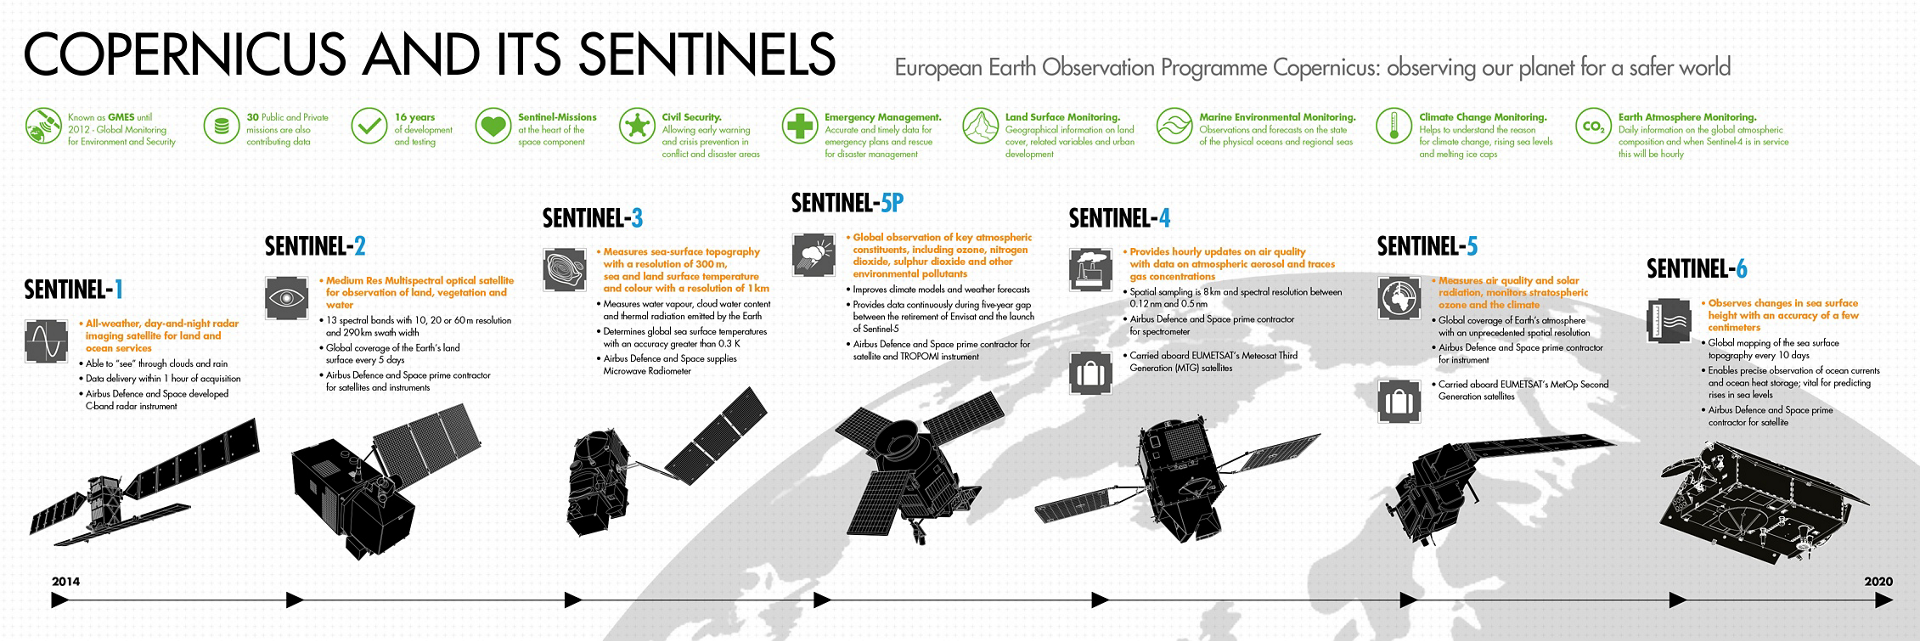 Copernicus And Sentinels Infographic